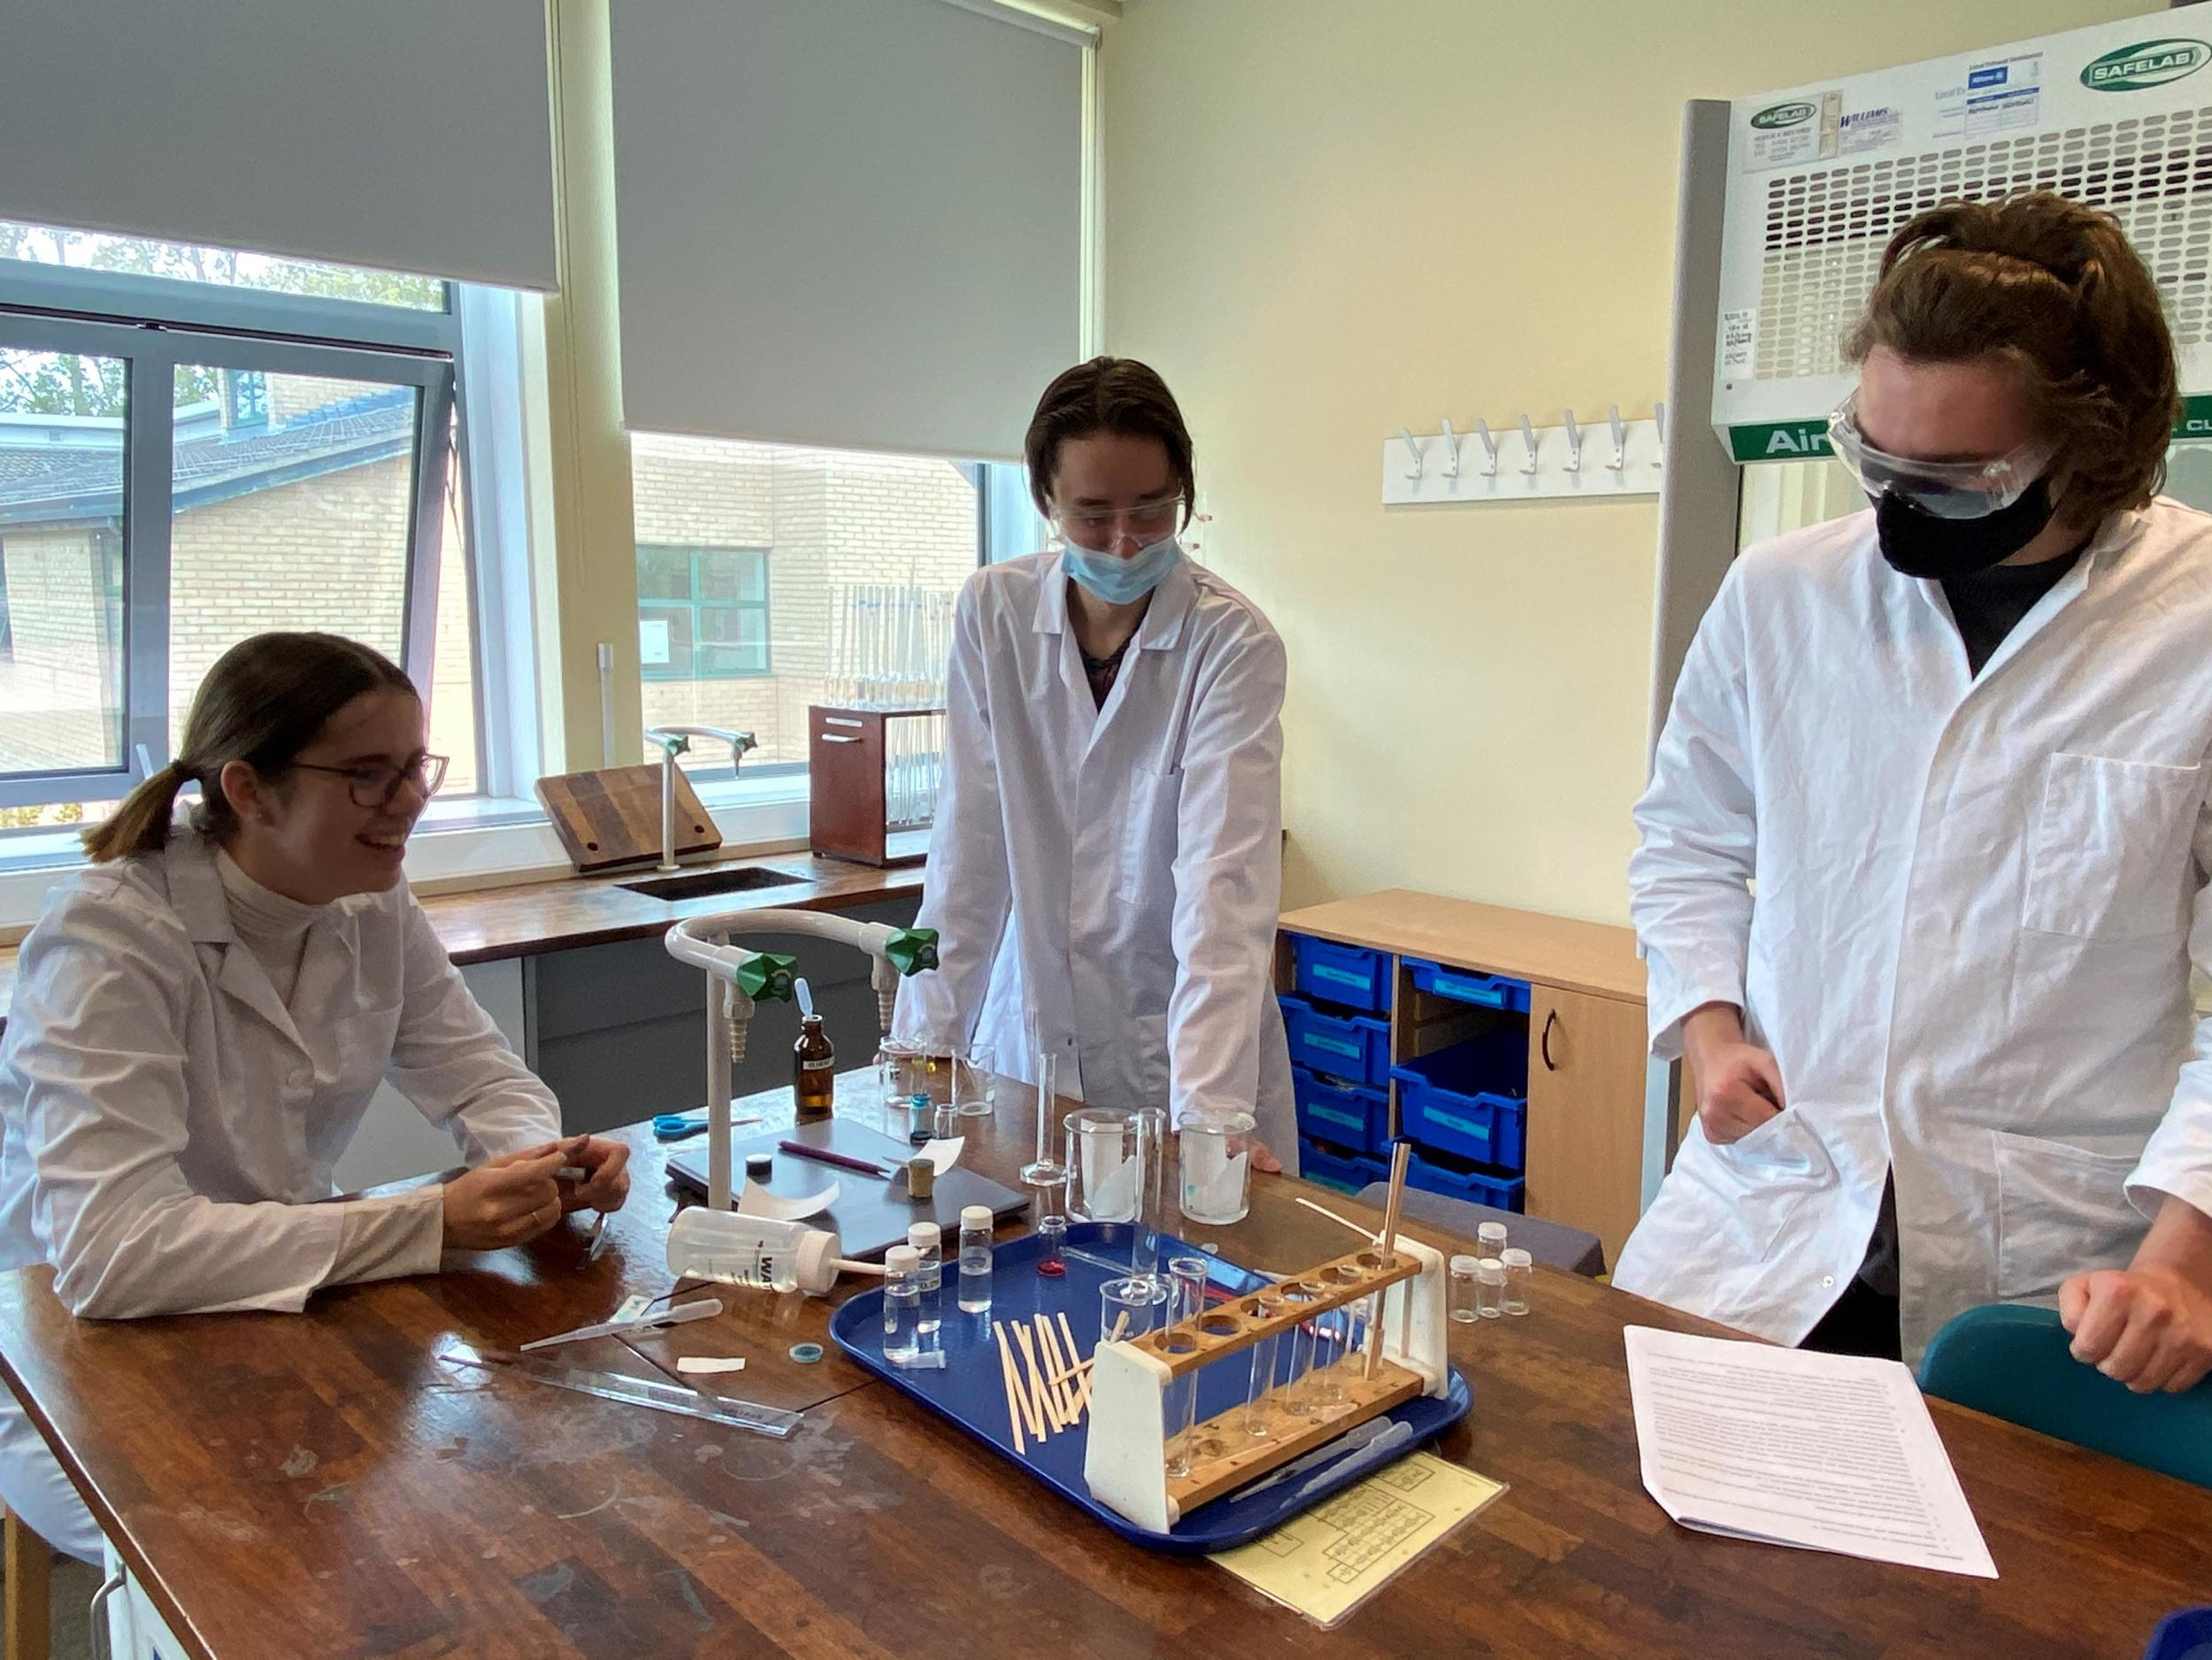 Three chemistry students in lab doing an experiement